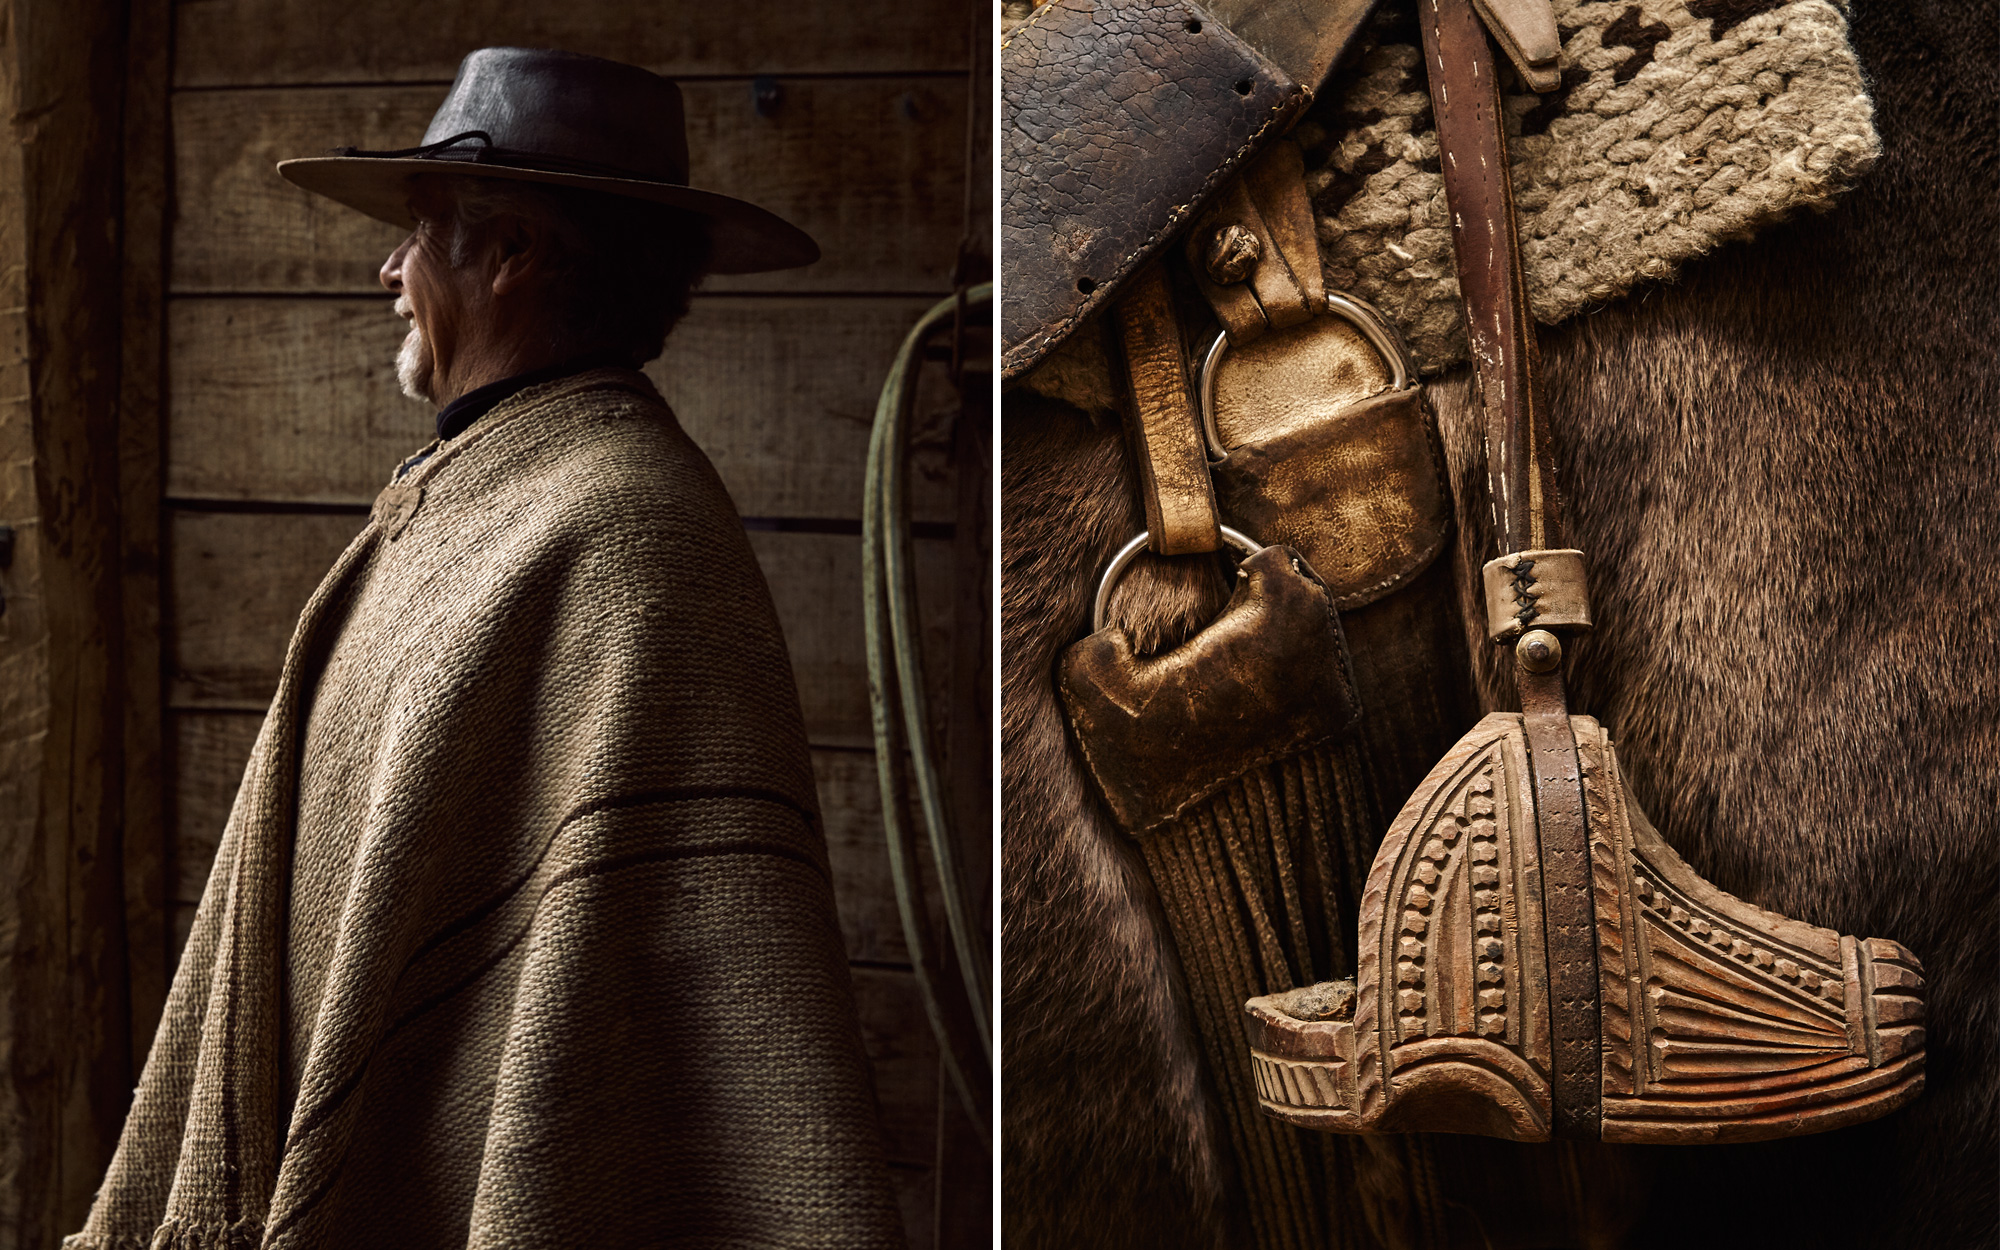 Rodolfo Coombs at his stable, near Vira Vira; An intricately carved traditional Chilean stirrup.